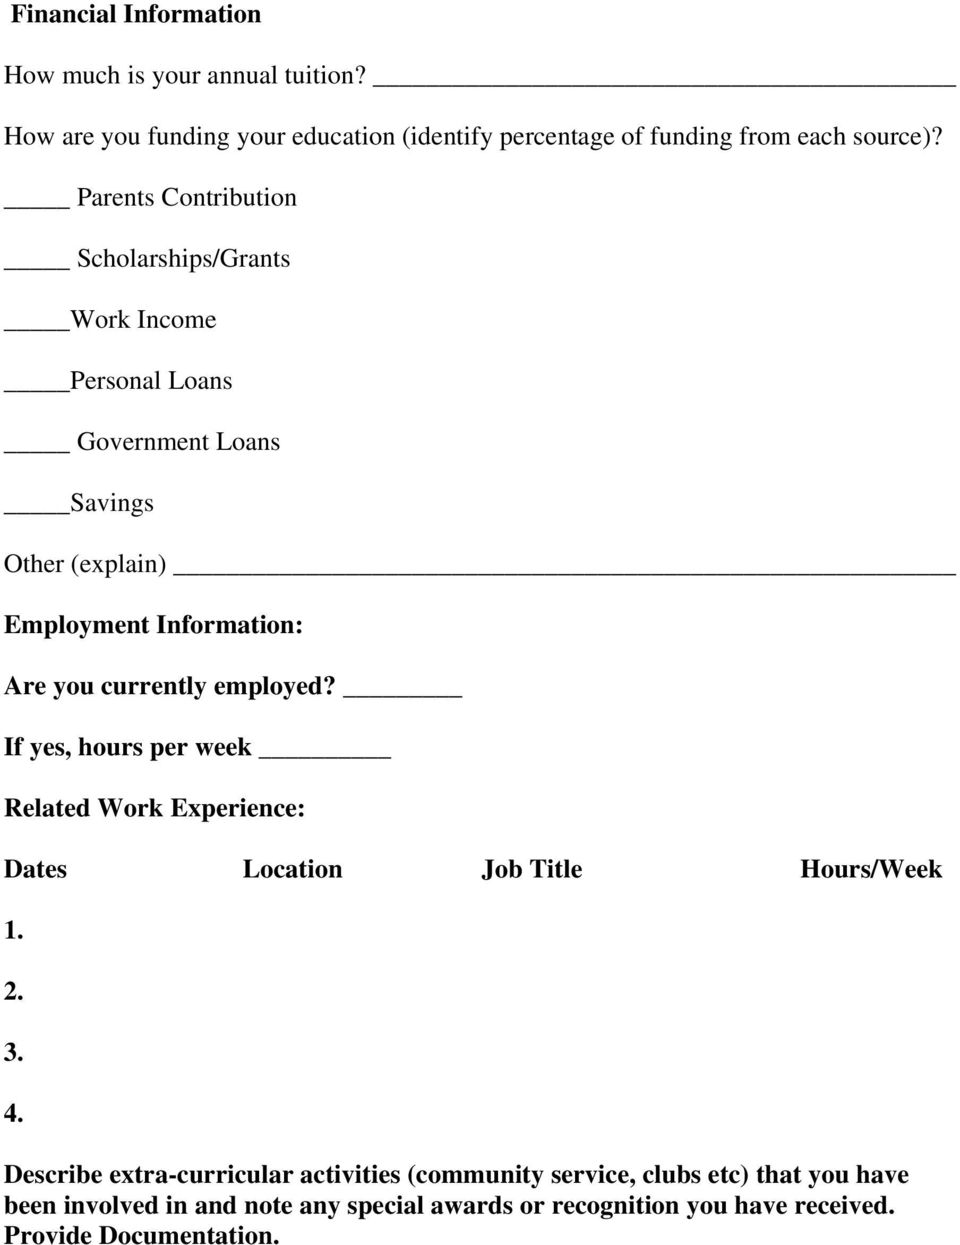 currently employed? If yes, hours per week Related Work Experience: Dates Location Job Title Hours/Week 1. 2. 3. 4.